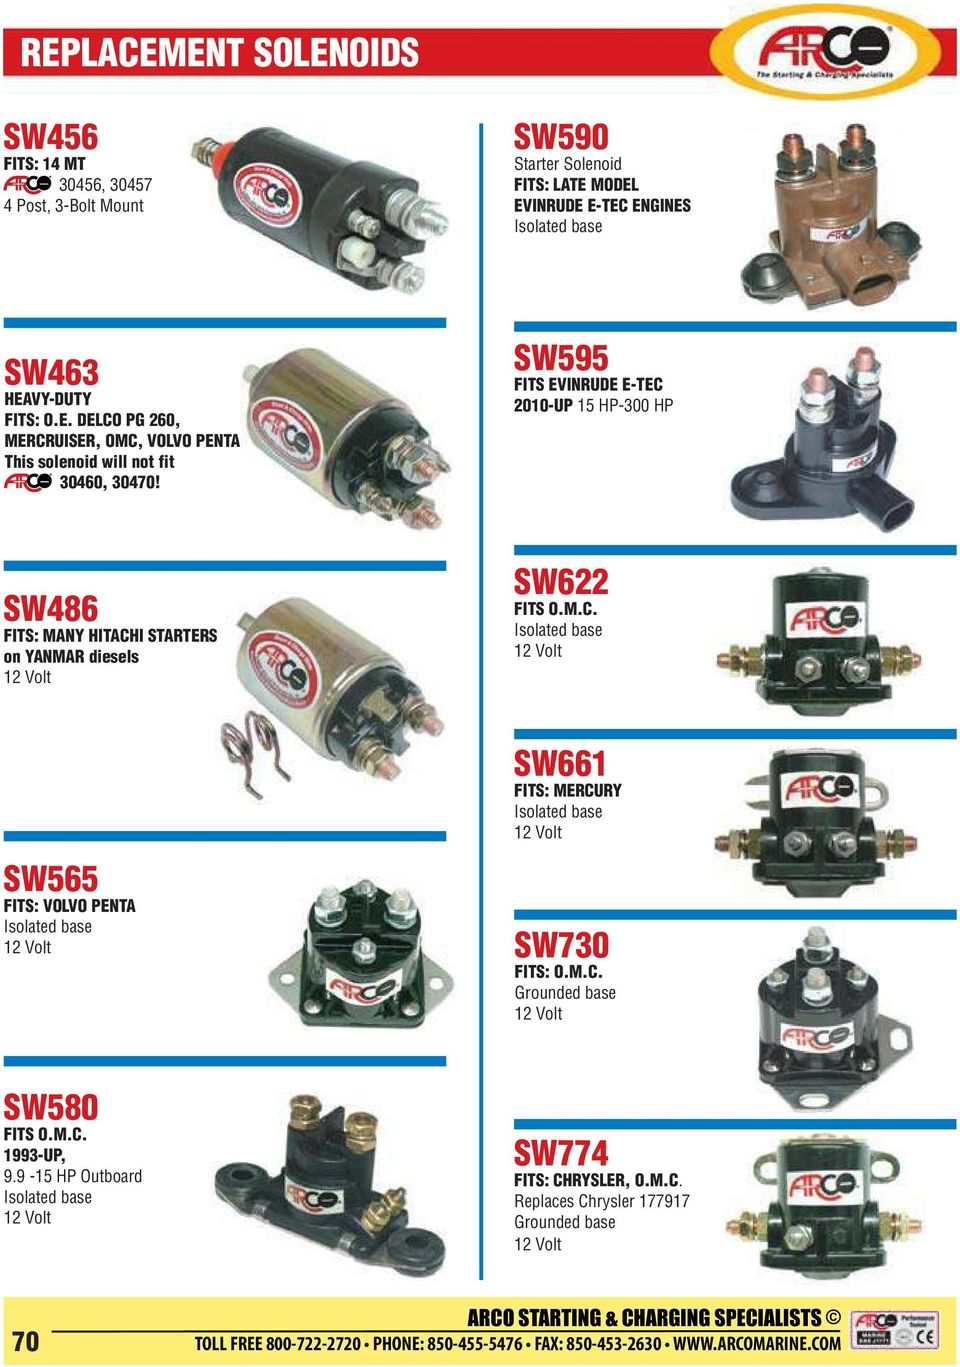 Replacement Solenoids Pdf Wiring Diagram Evinrude 2015 E Tec 40 Sw595 Fits 2010 Up 15 Hp 300 Sw486